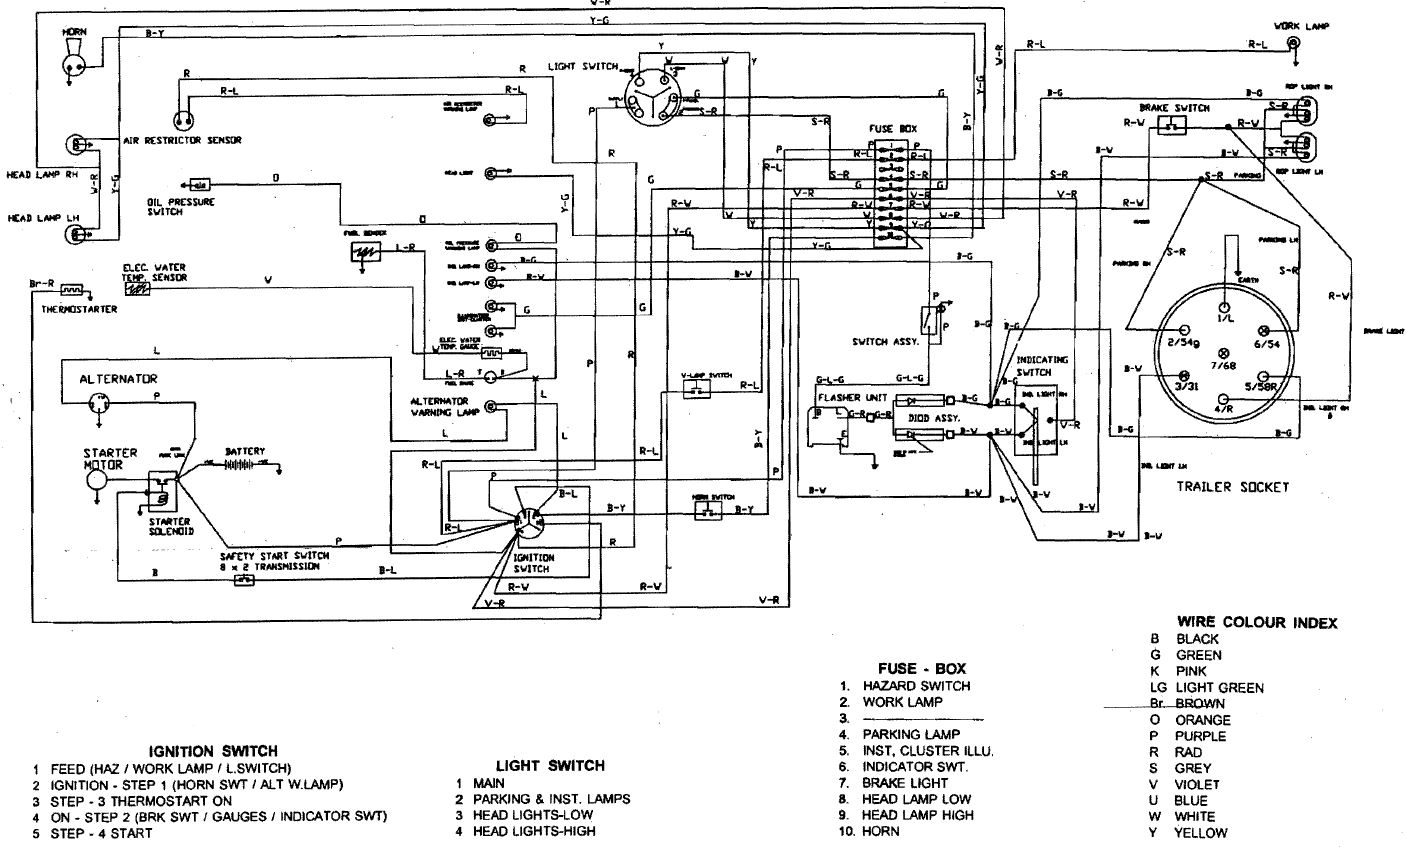 John Deere 170 Wiring Diagram - Wiring Library • Woofit.co